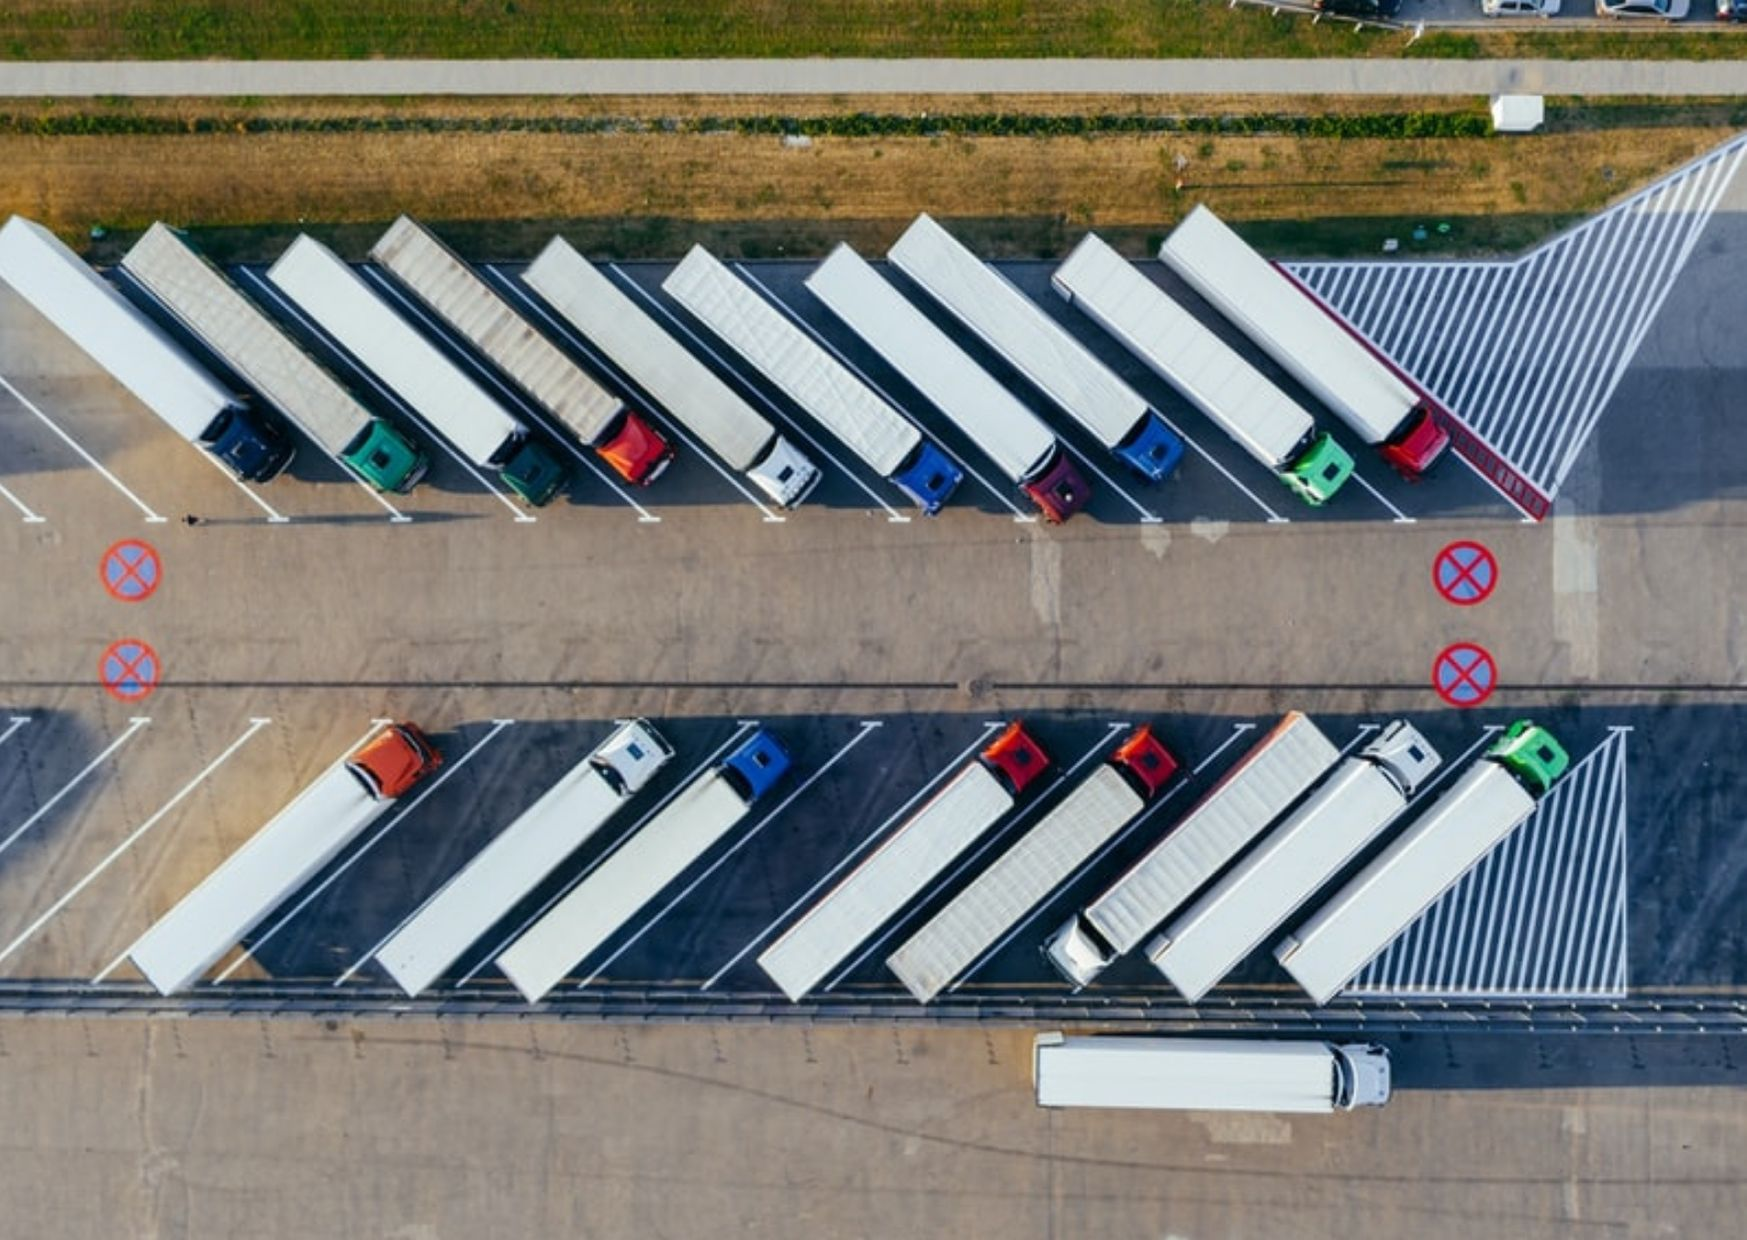 Making zero-emission road freight a reality